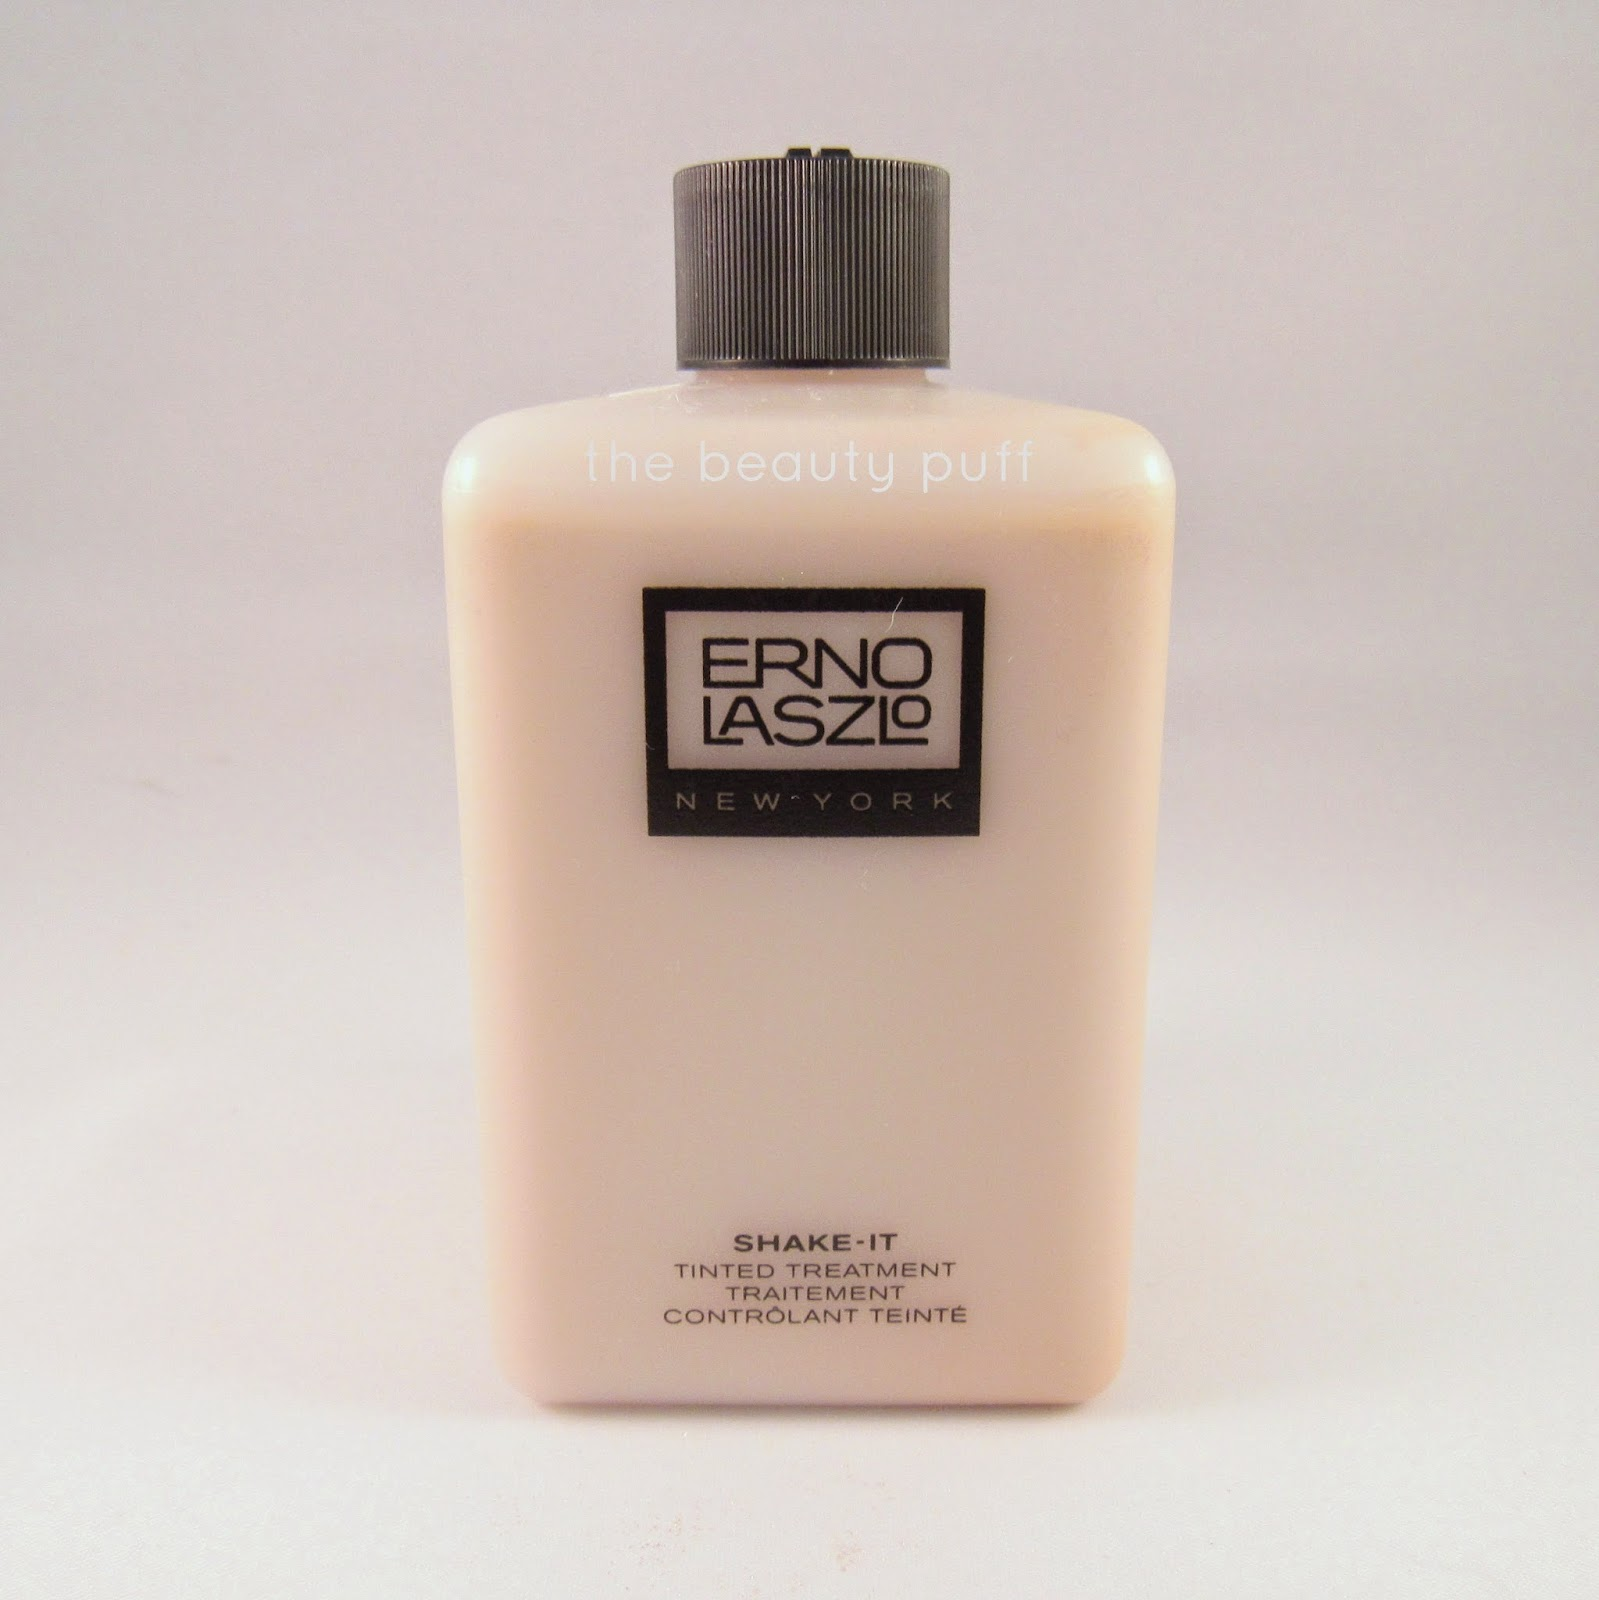 erno laszlo shake it tinted treatment - the beauty puff